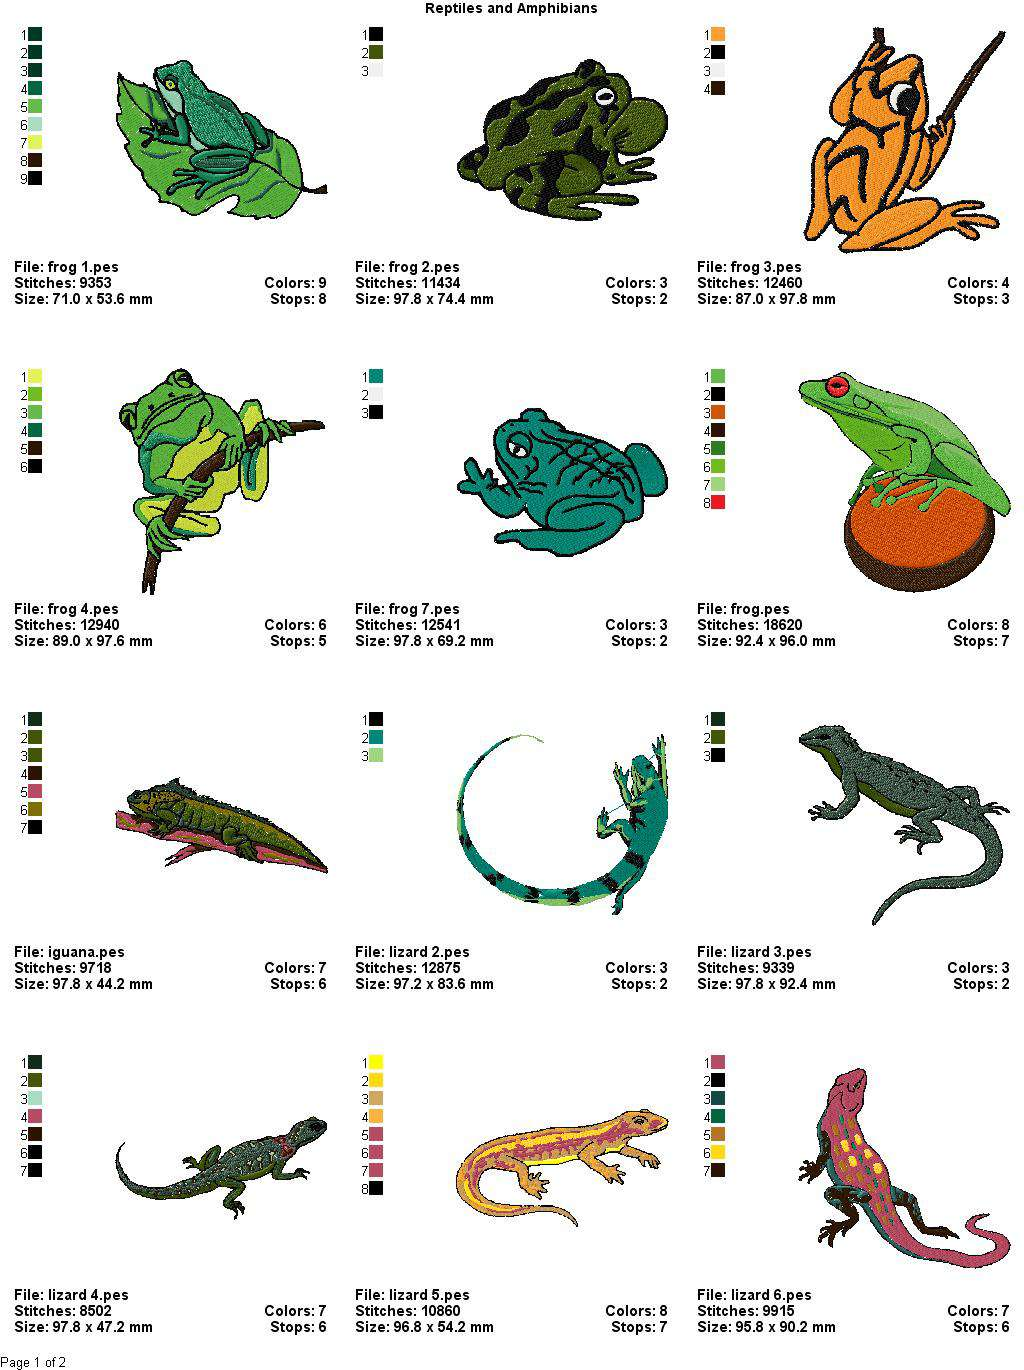 Name 10 Amphibians Gallery